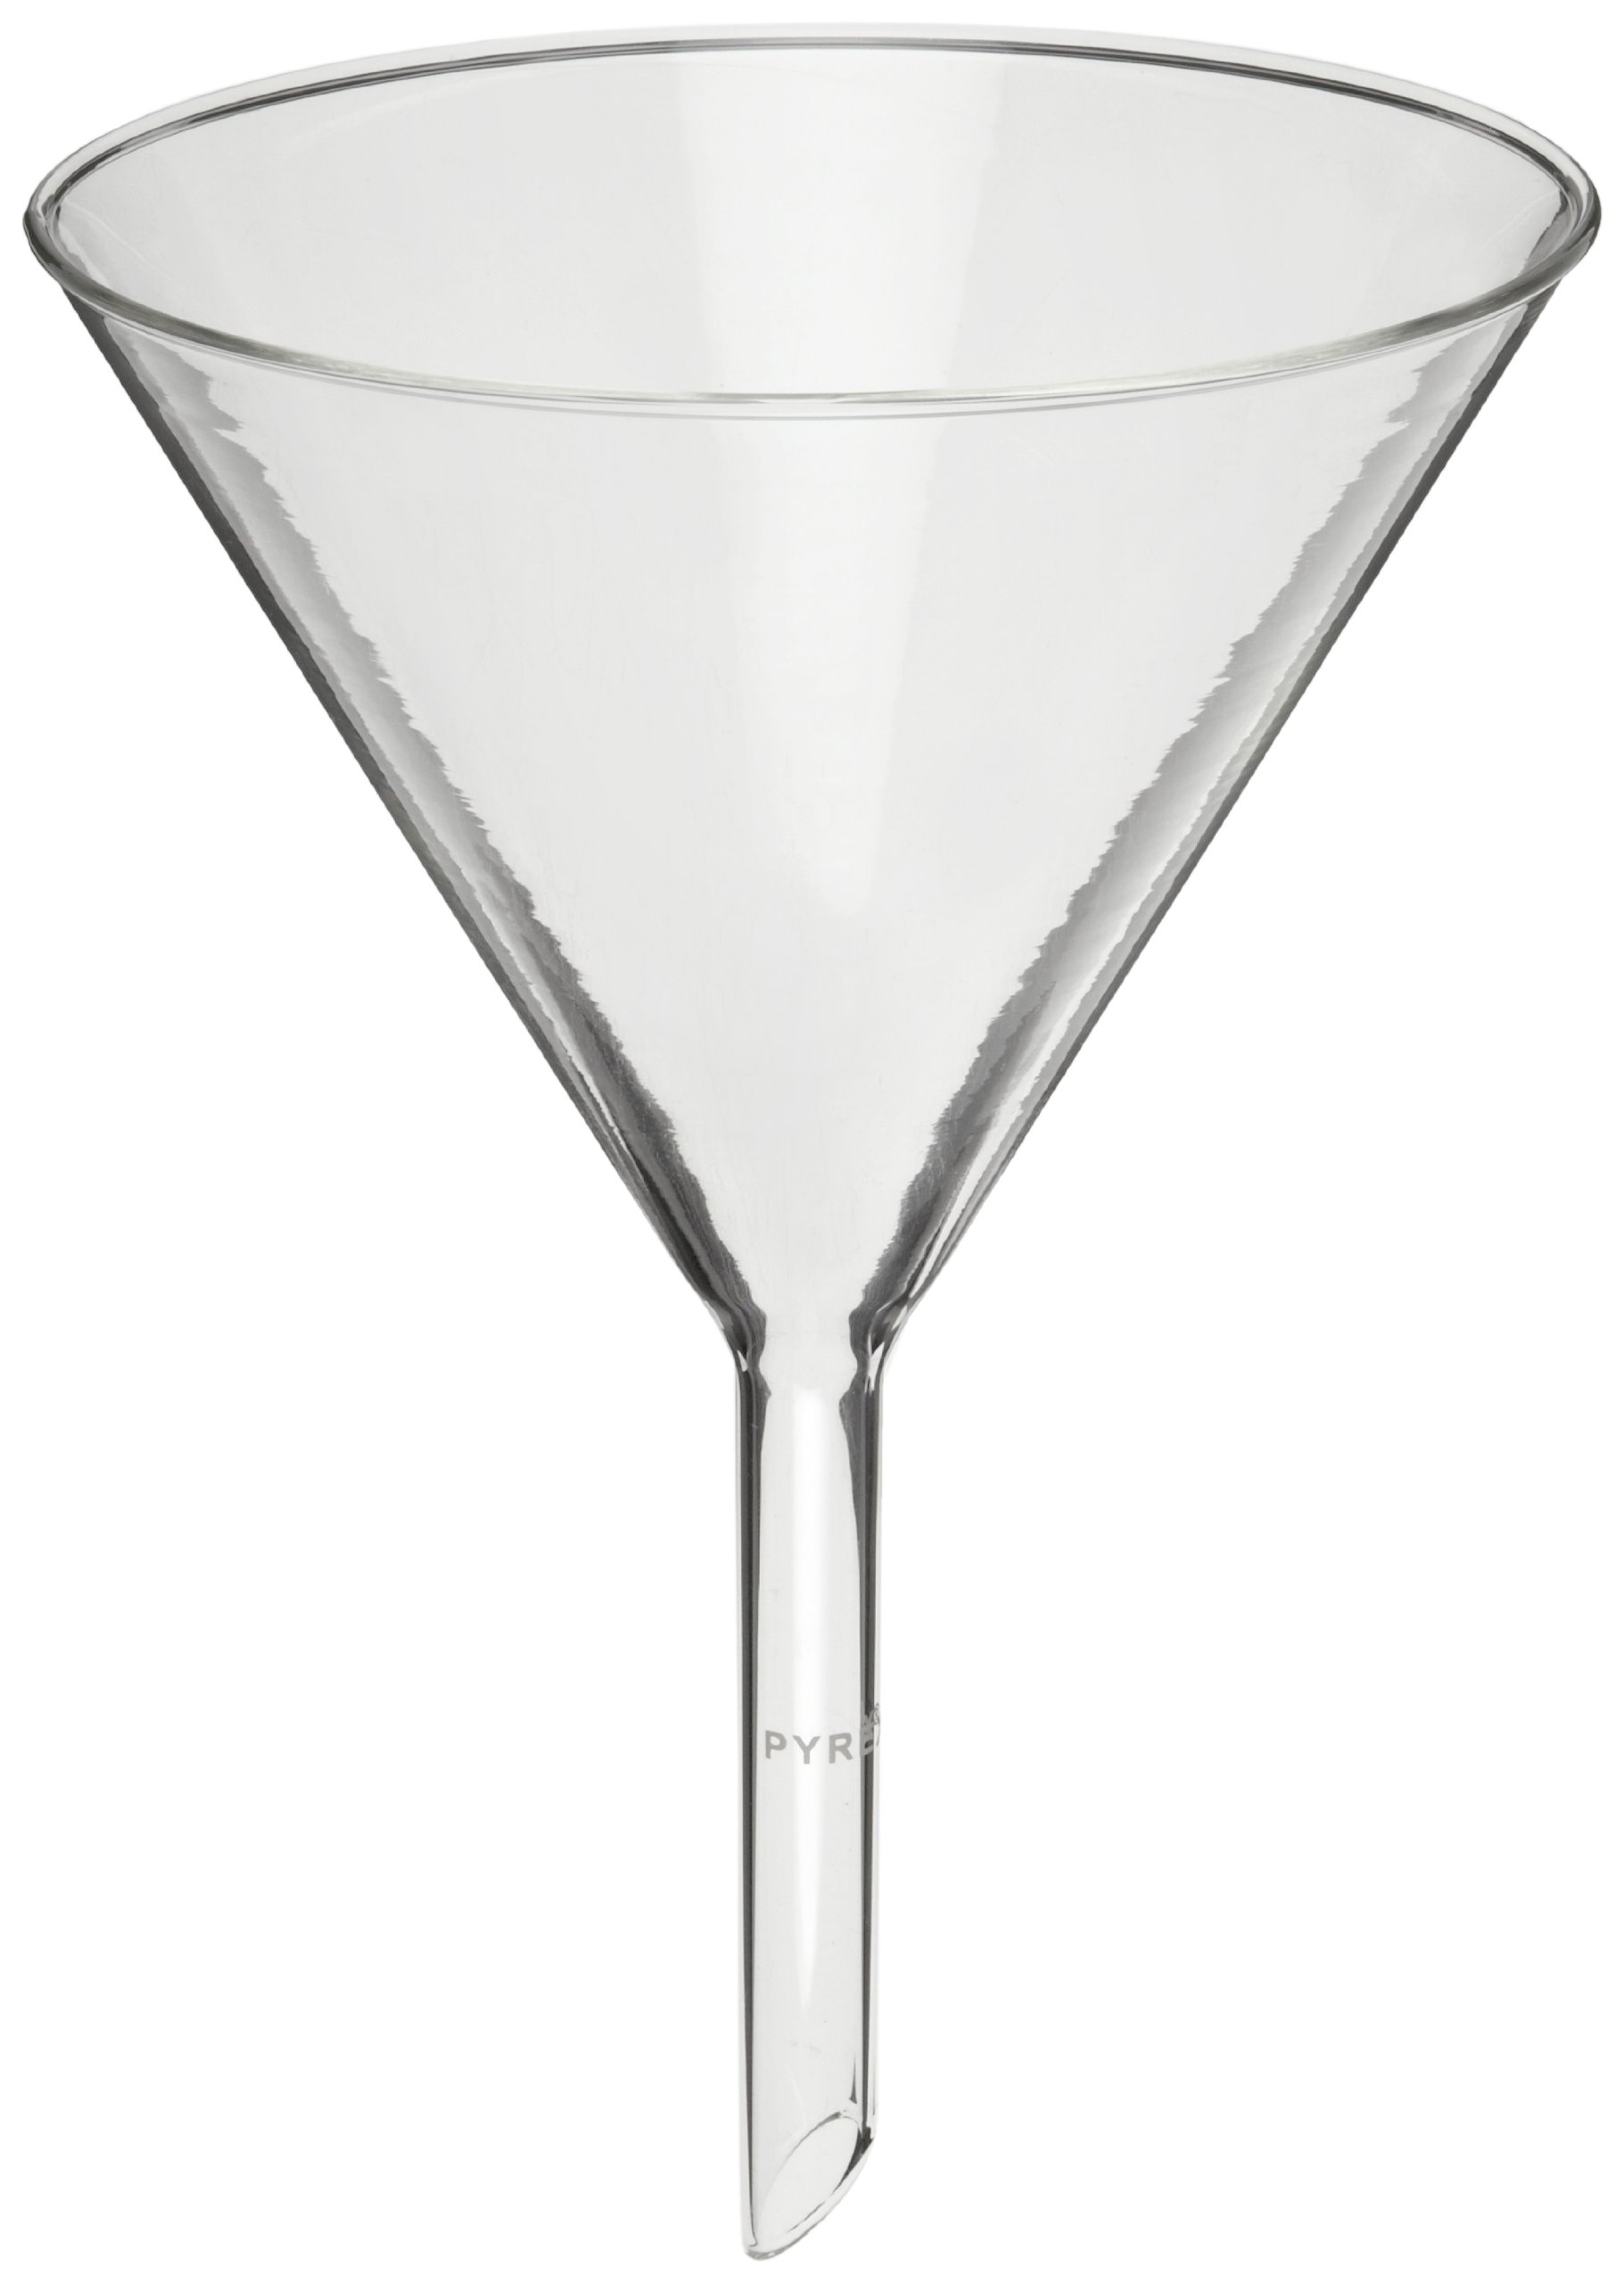 Corning Pyrex 6120-6 Borosilicate Glass Plain Funnel, with Short Wide Stem, 147mm Diameter (Pack of 6)